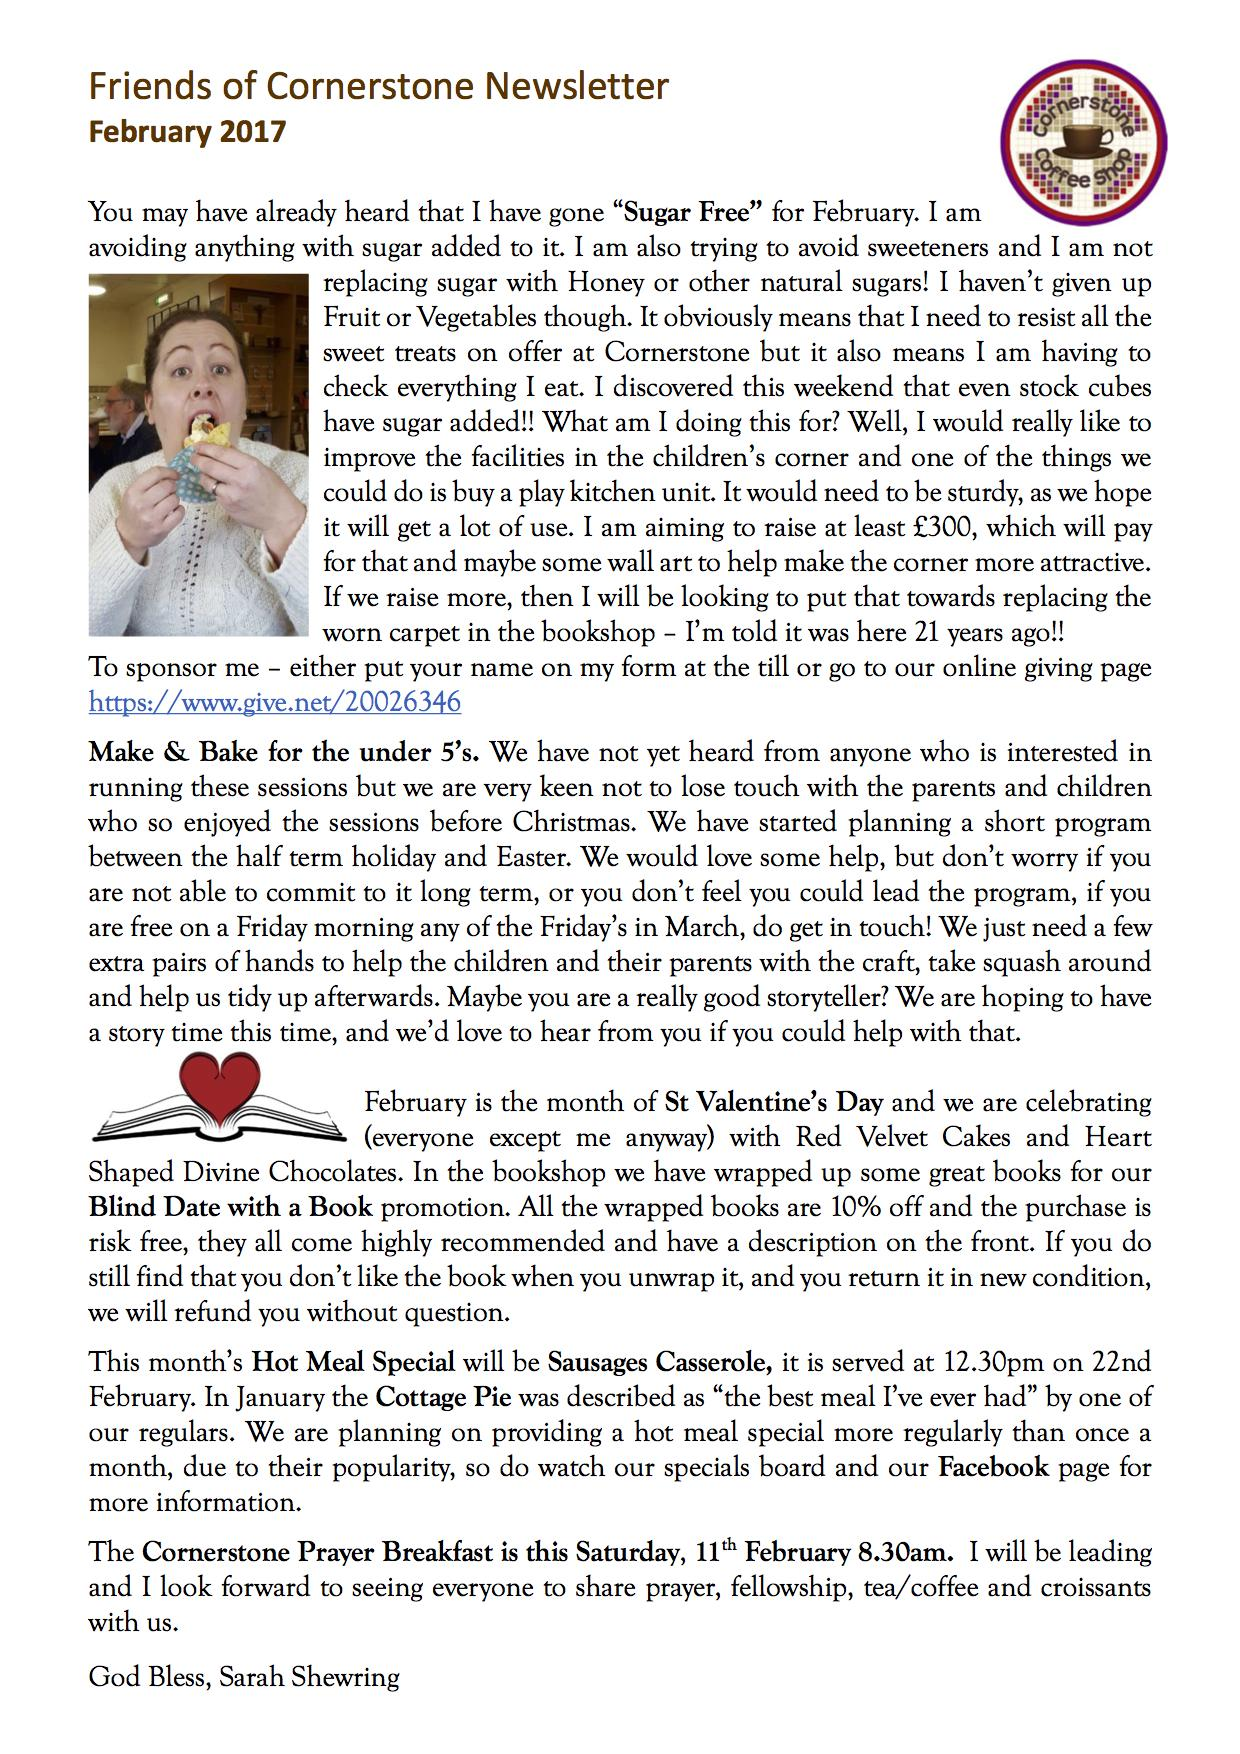 Friends Newsletter February 17